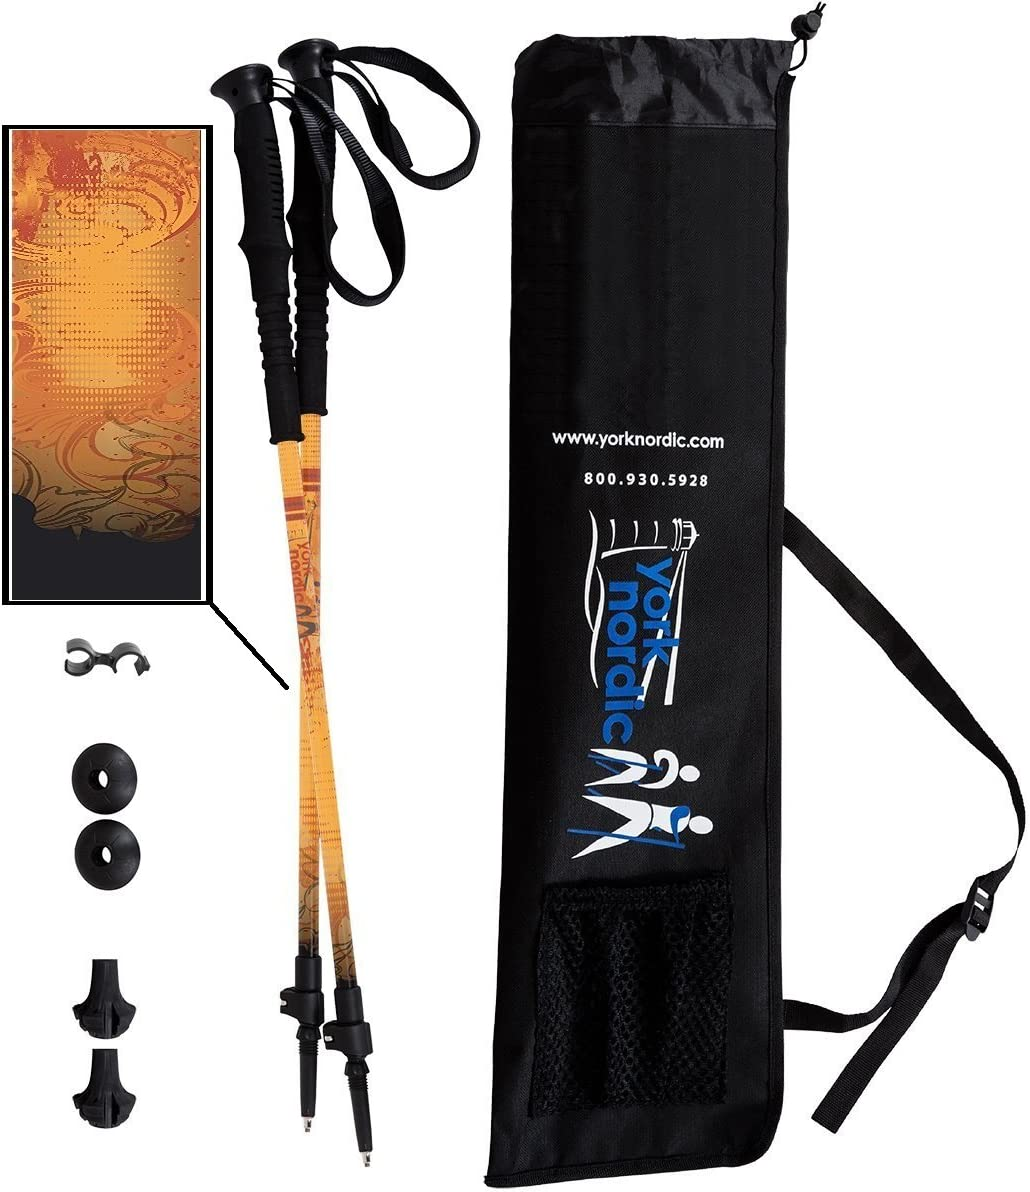 York Nordic 2 Piece Adjustable Trekking Walking Poles – Lightweight – 6 Color Options – Choice of Grips – 2 Poles, Tips Bag